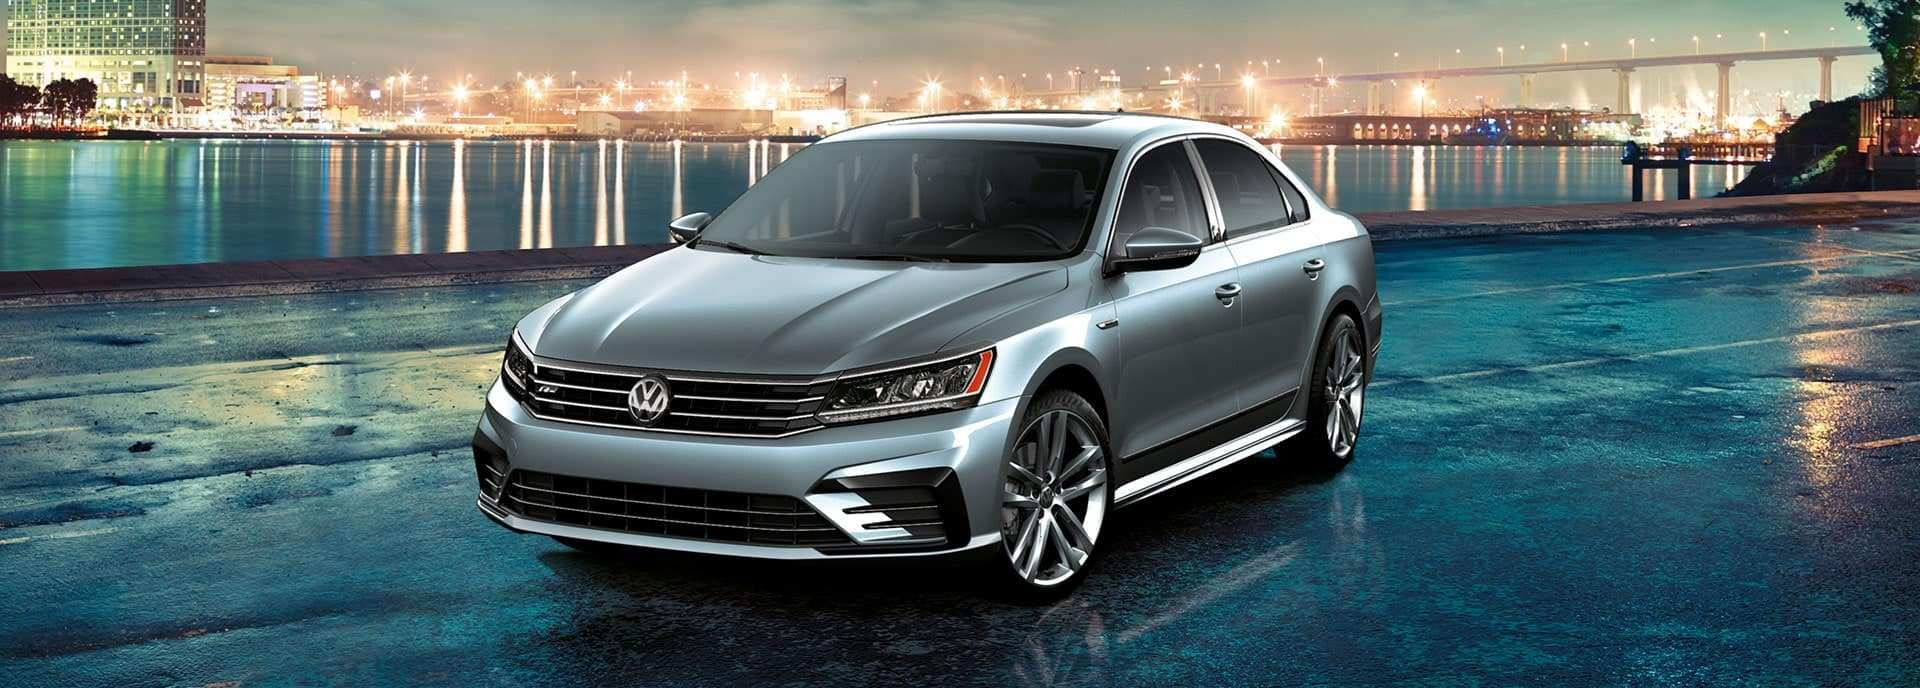 61 A 2019 Volkswagen CC Review And Release Date